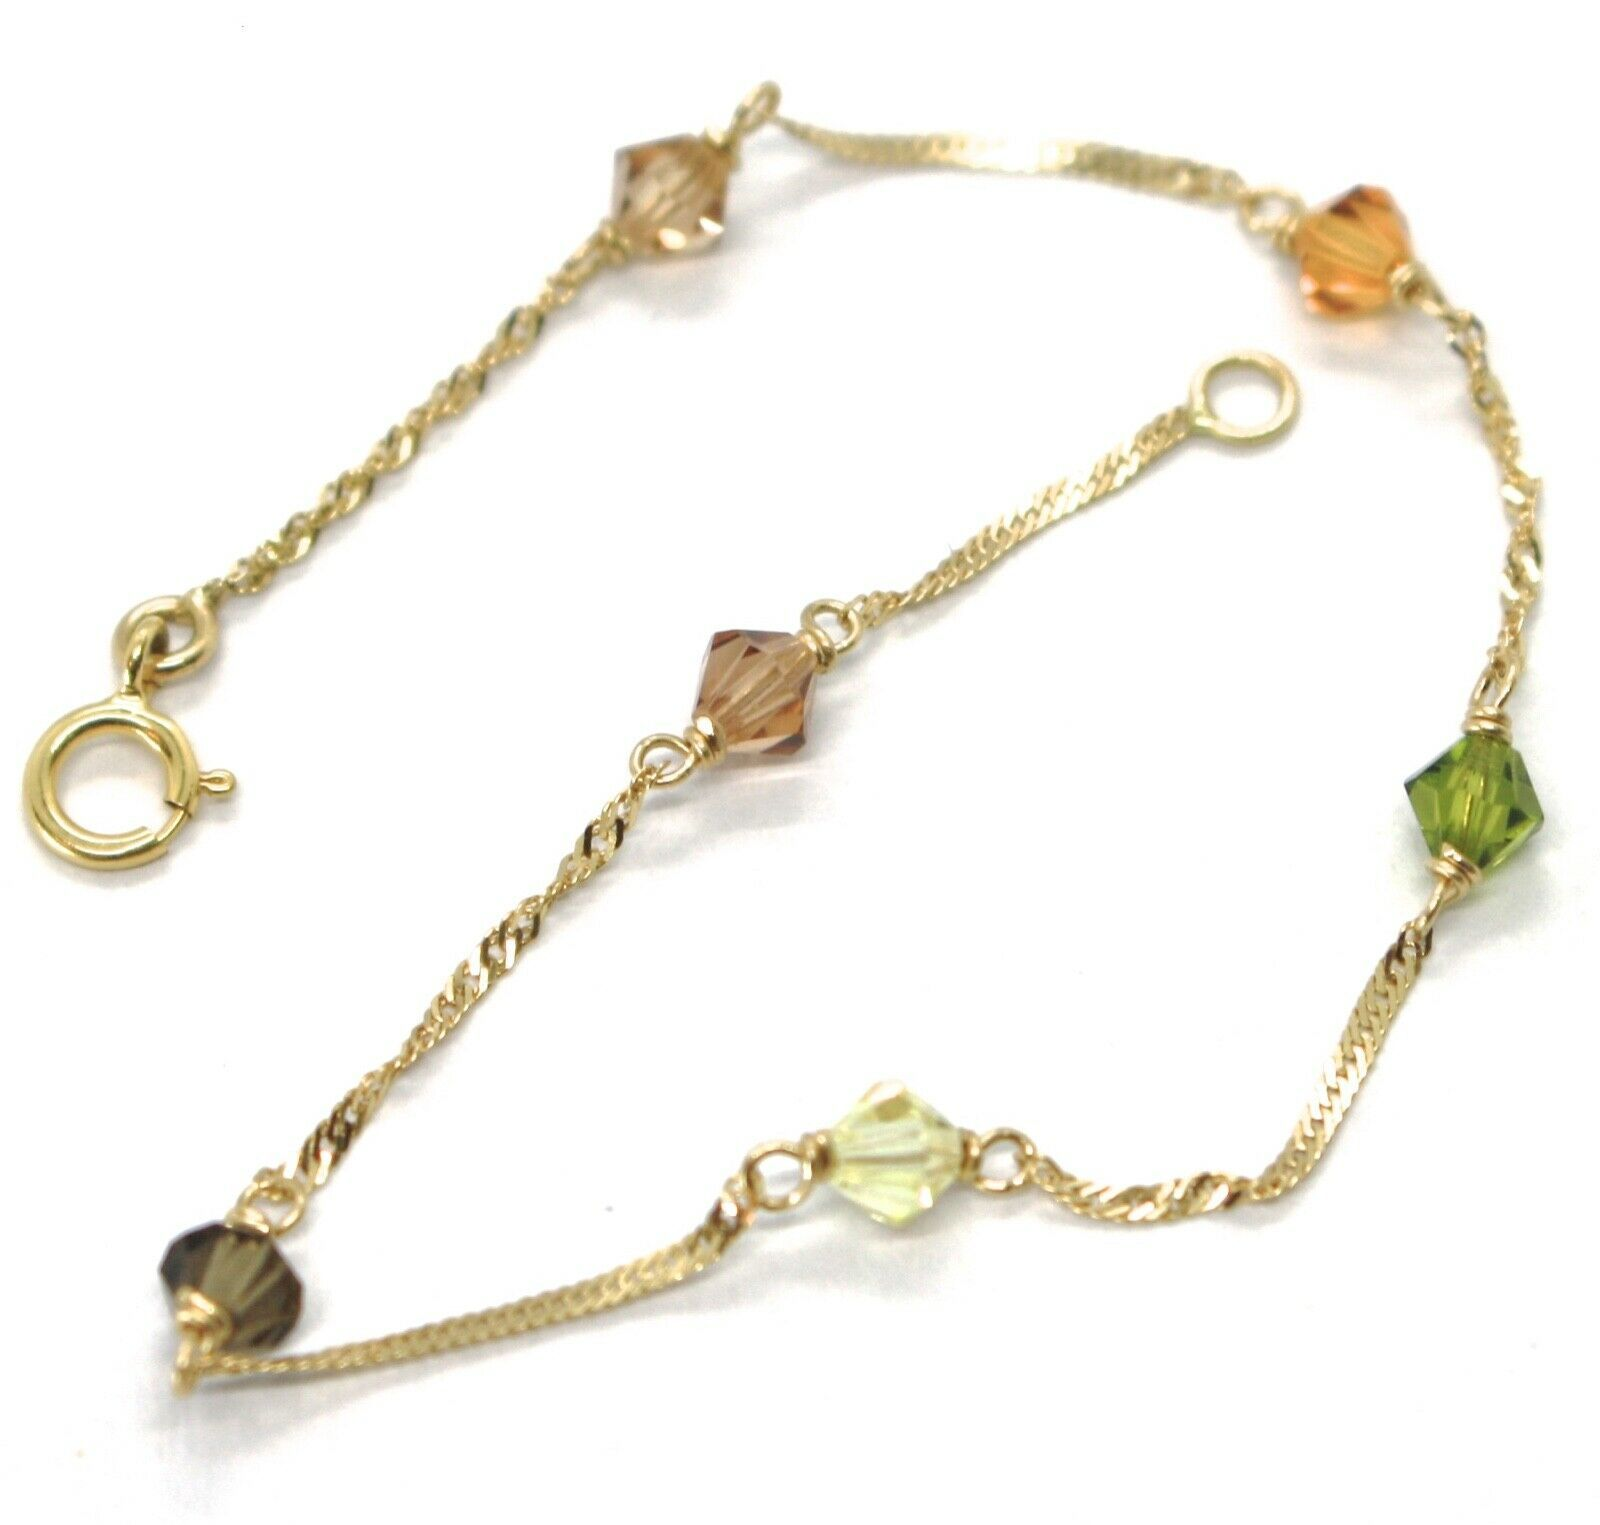 18K YELLOW GOLD BRACELET, ALTERNATE FACETED MULTI COLOR CRYSTALS SINGAPORE CHAIN